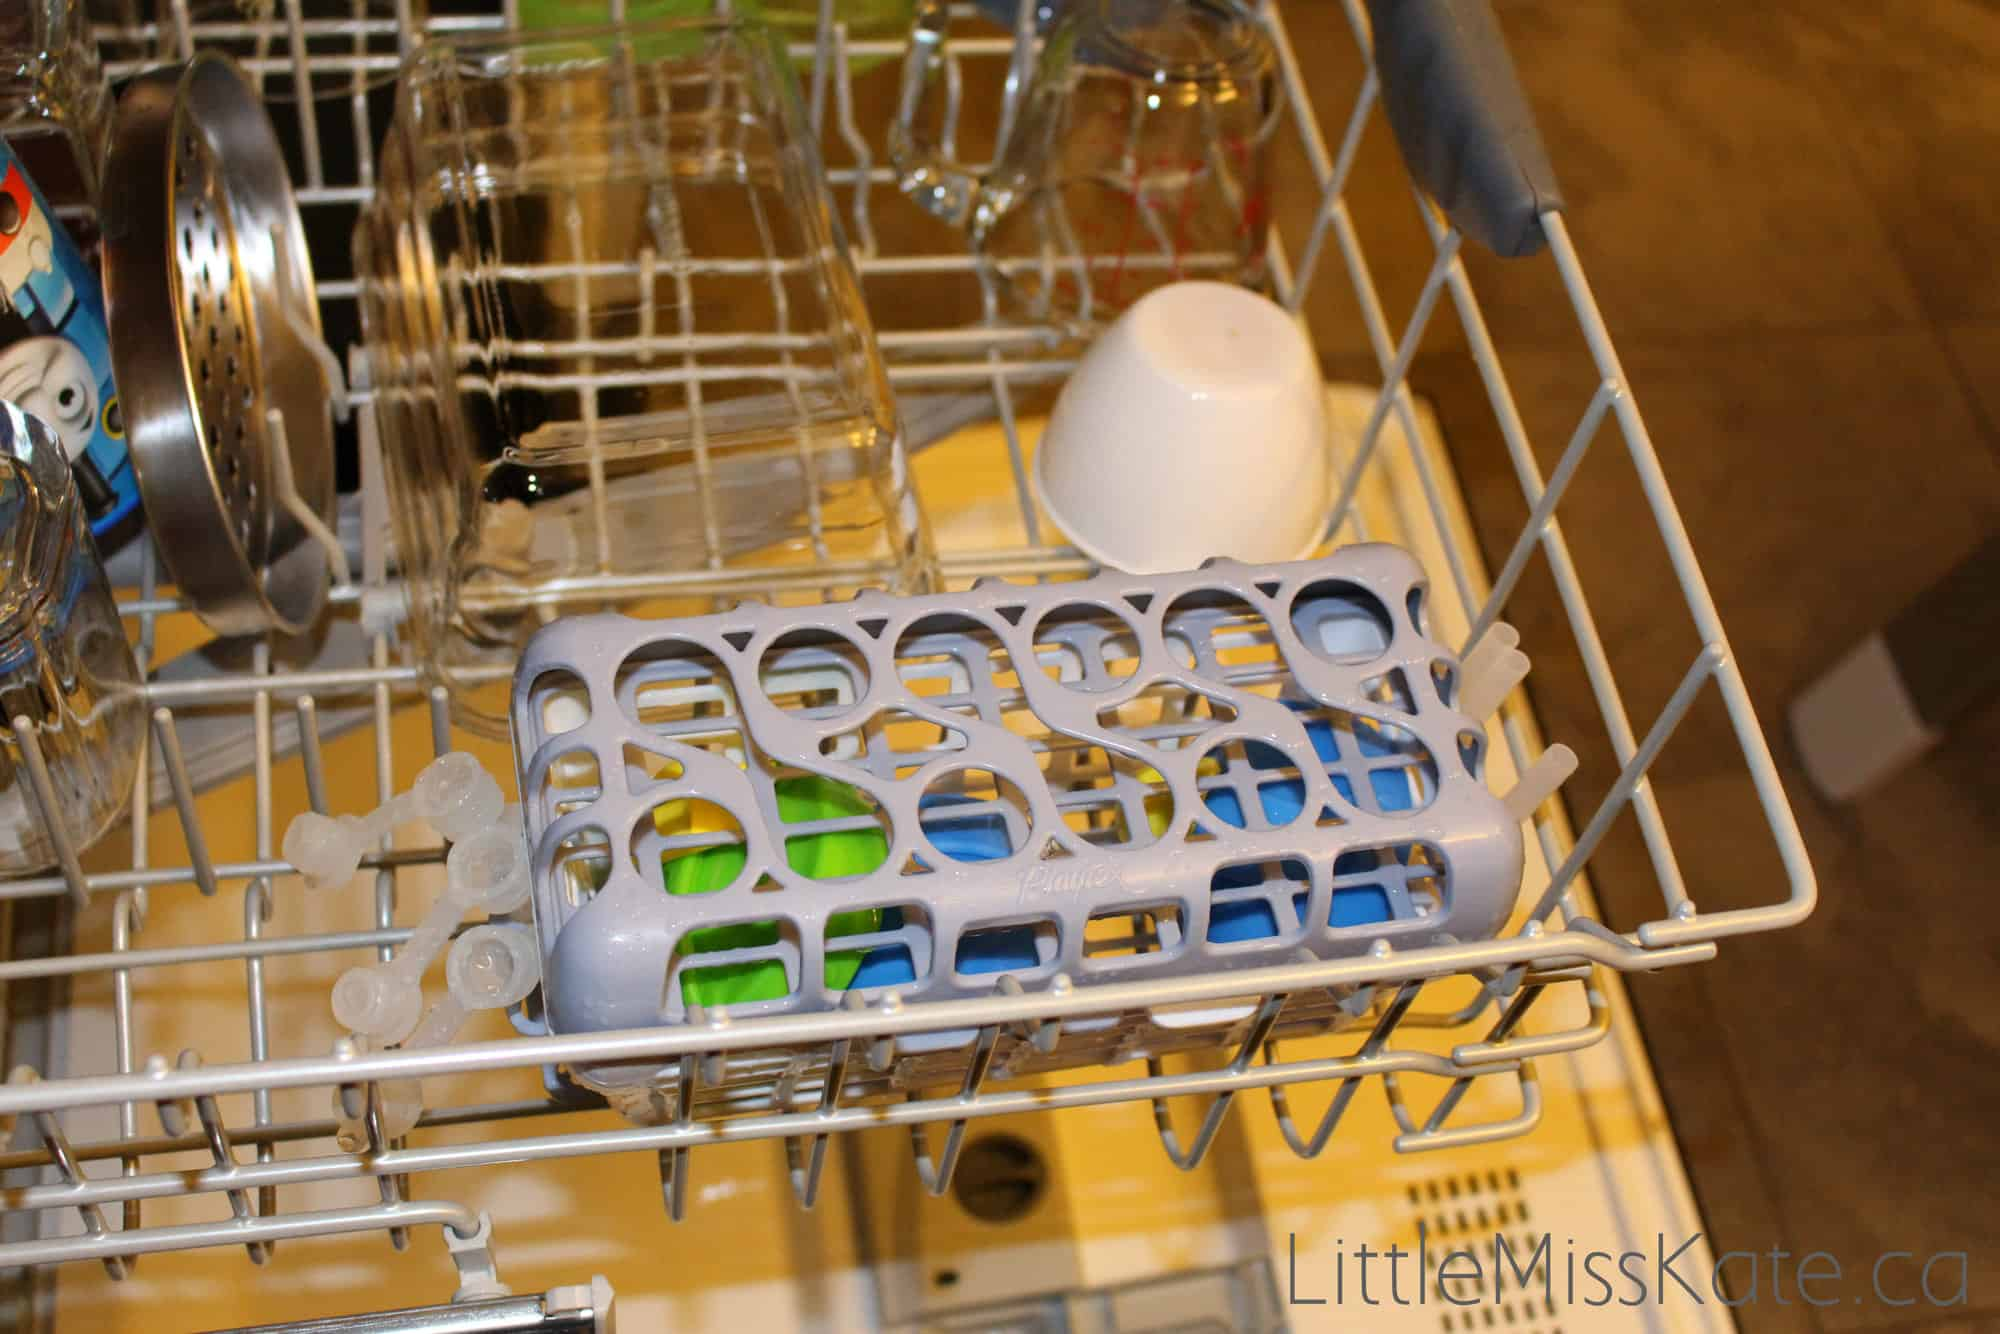 Playtex SmartSpace Dishwasher Basket straws